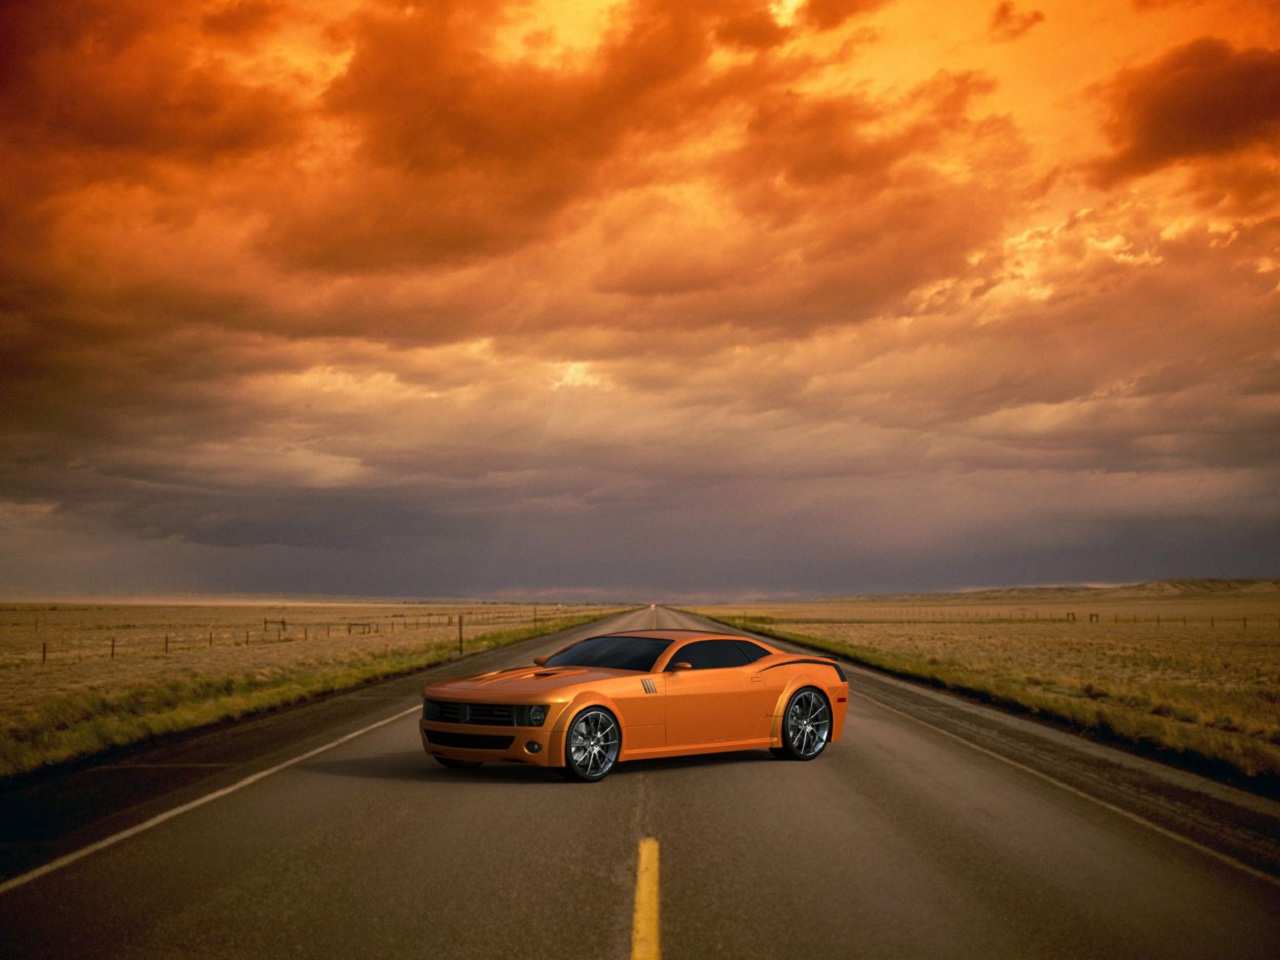 38099 download wallpaper Auto, Transport, Roads screensavers and pictures for free